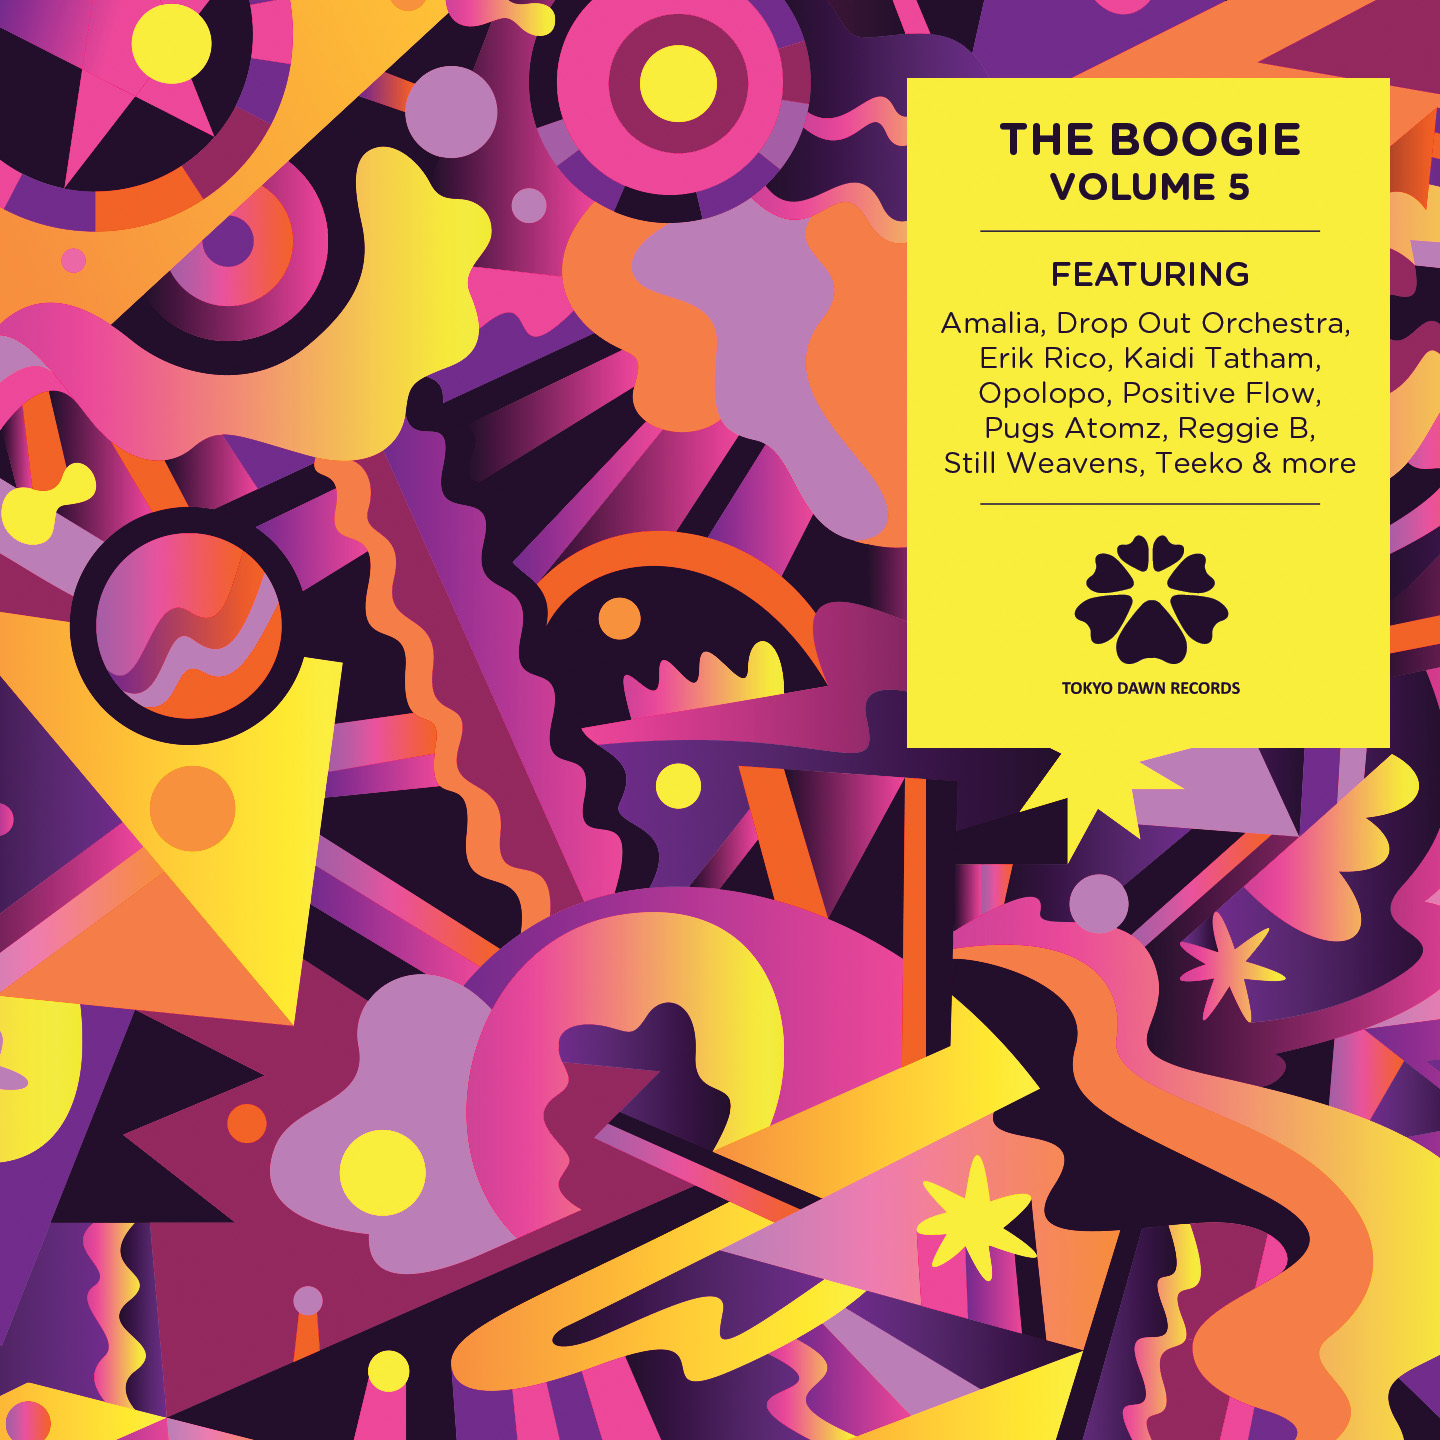 Tokyo Dawn Records – The Boogie Volume 5 // Album snippets